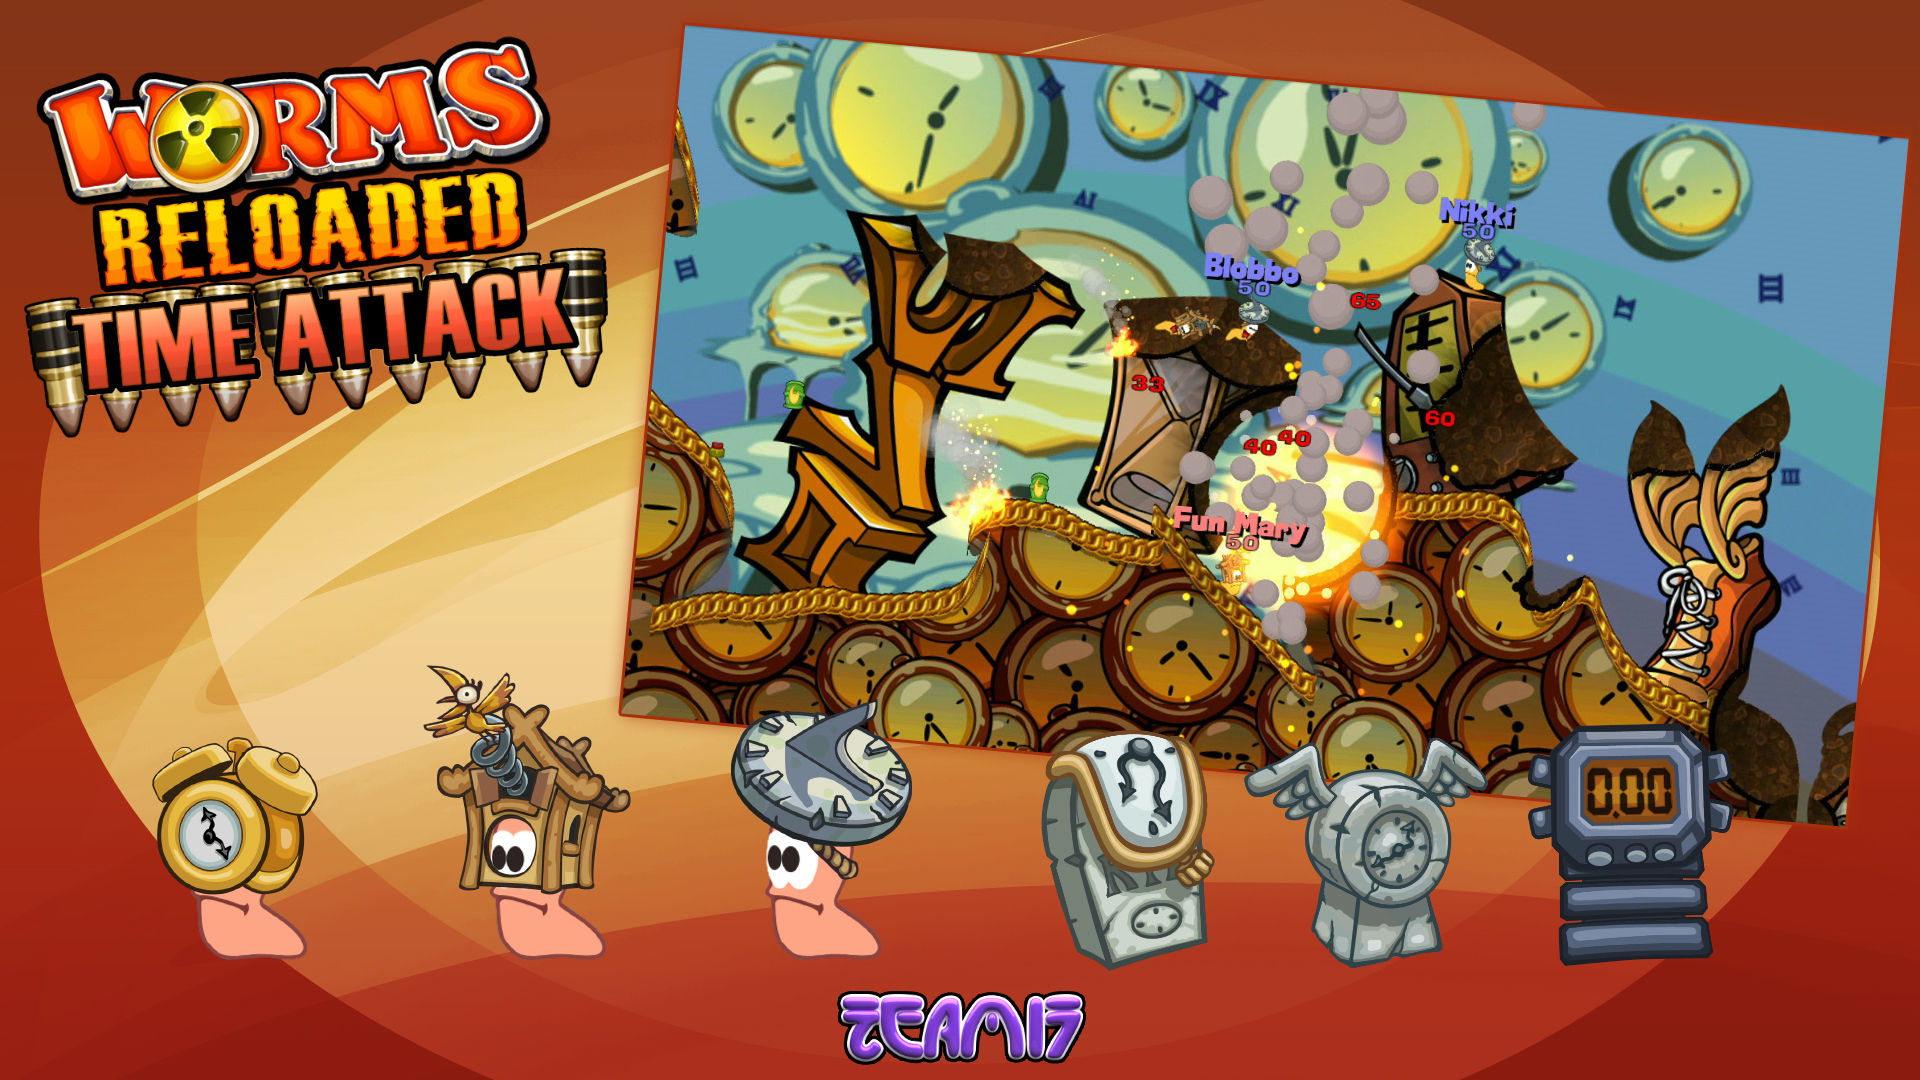 Worms Reloaded Free Online